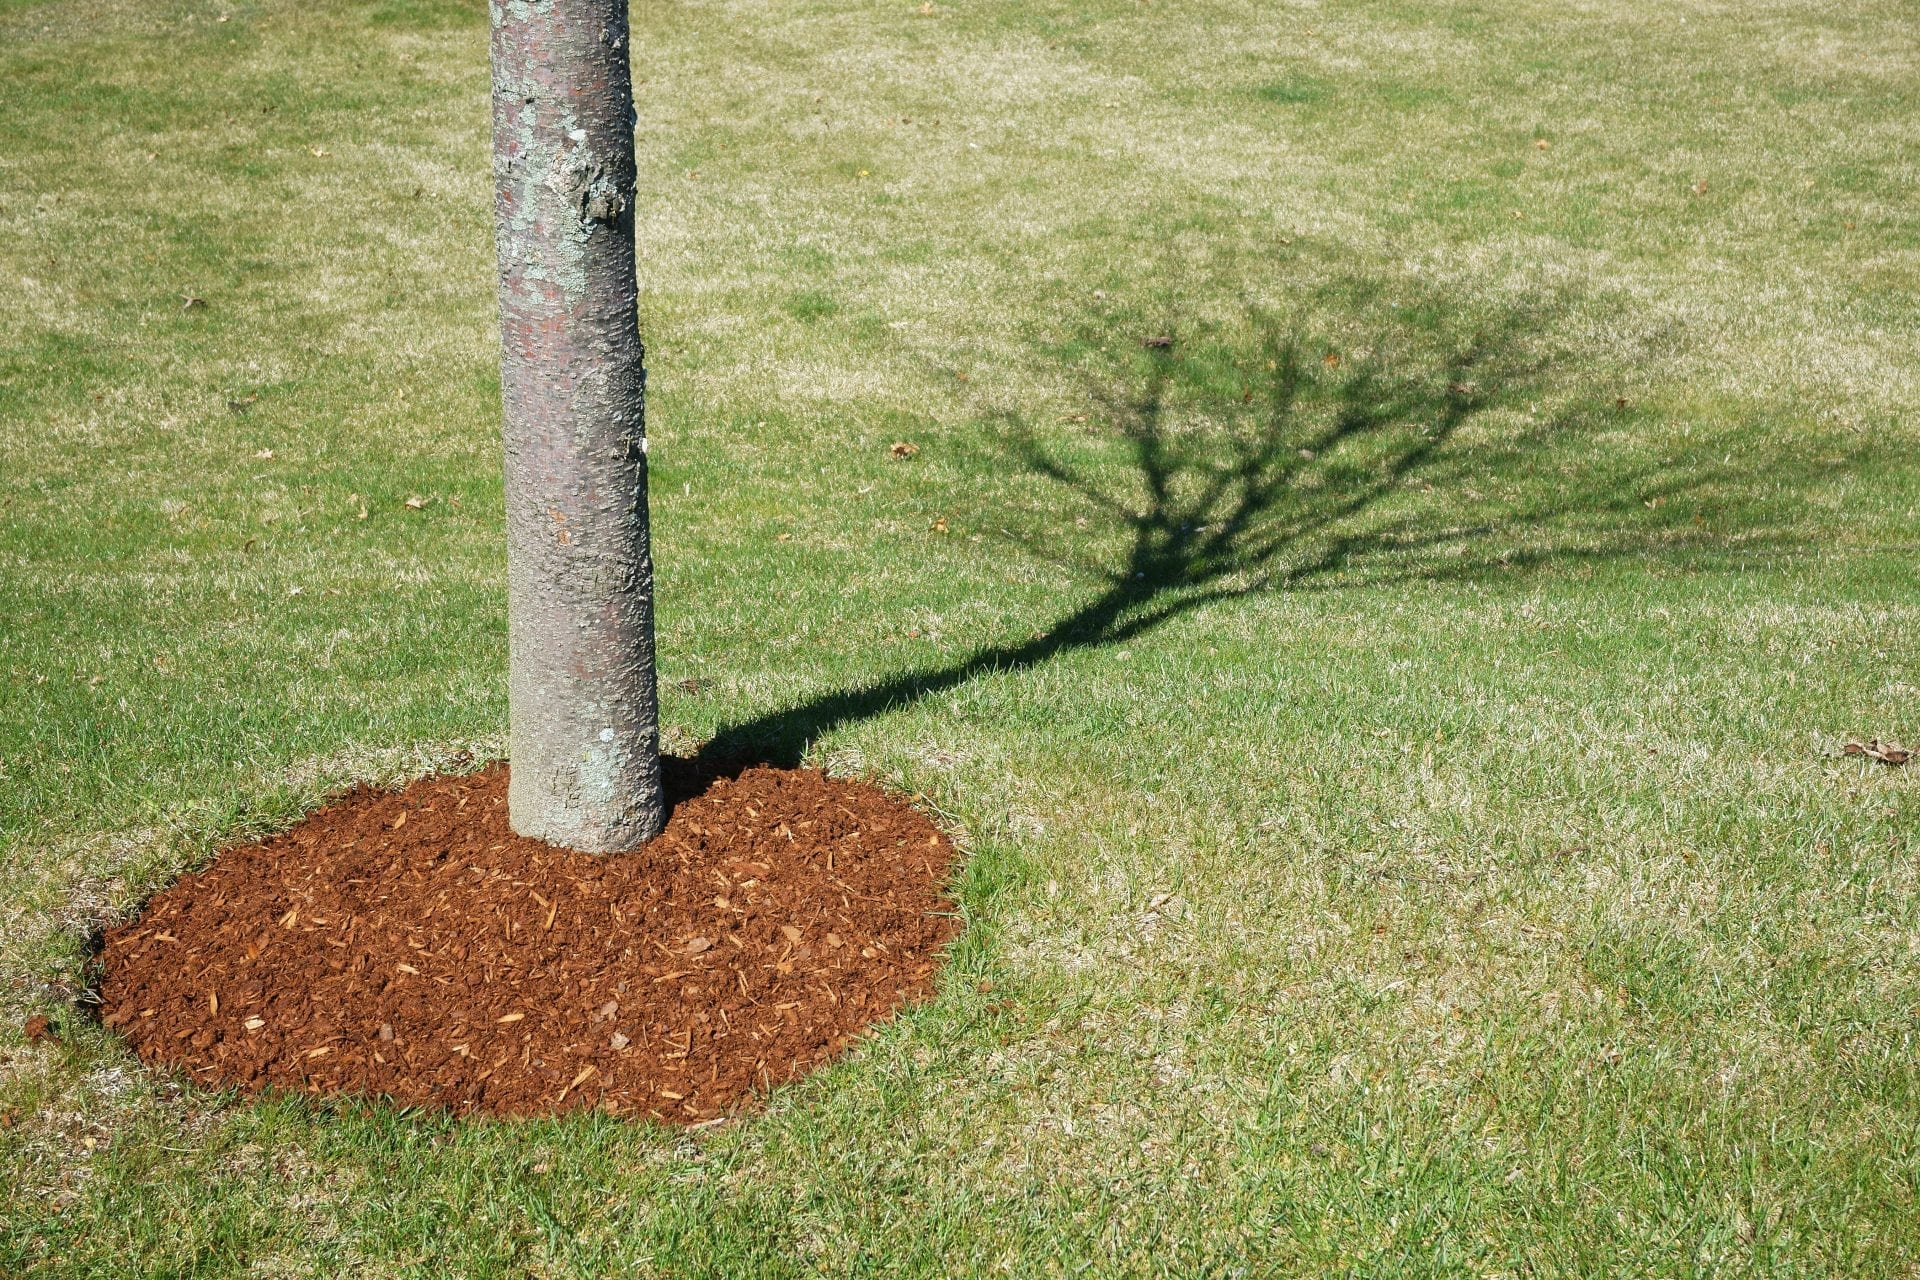 How Important Is It To Mulch? | Blog | Front Range Arborists